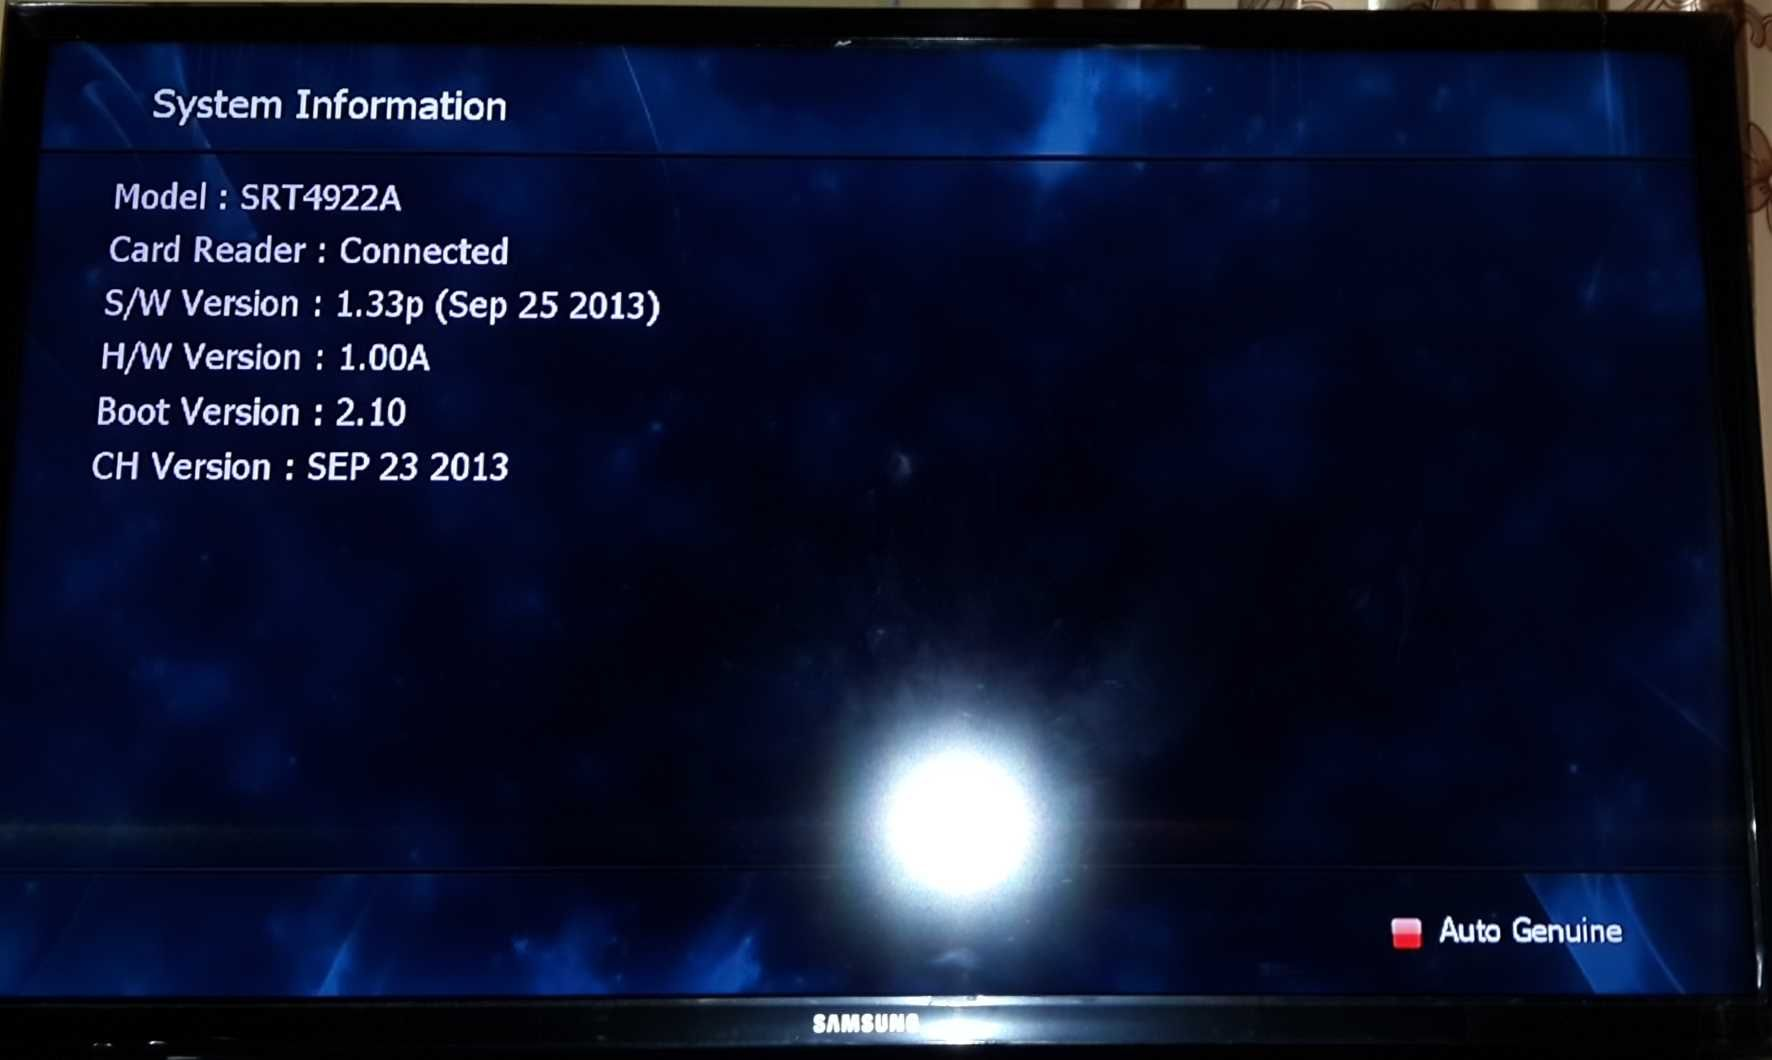 Download Strong 4922 / 4920 / 4922a Firmware and Watch 170 IPTV